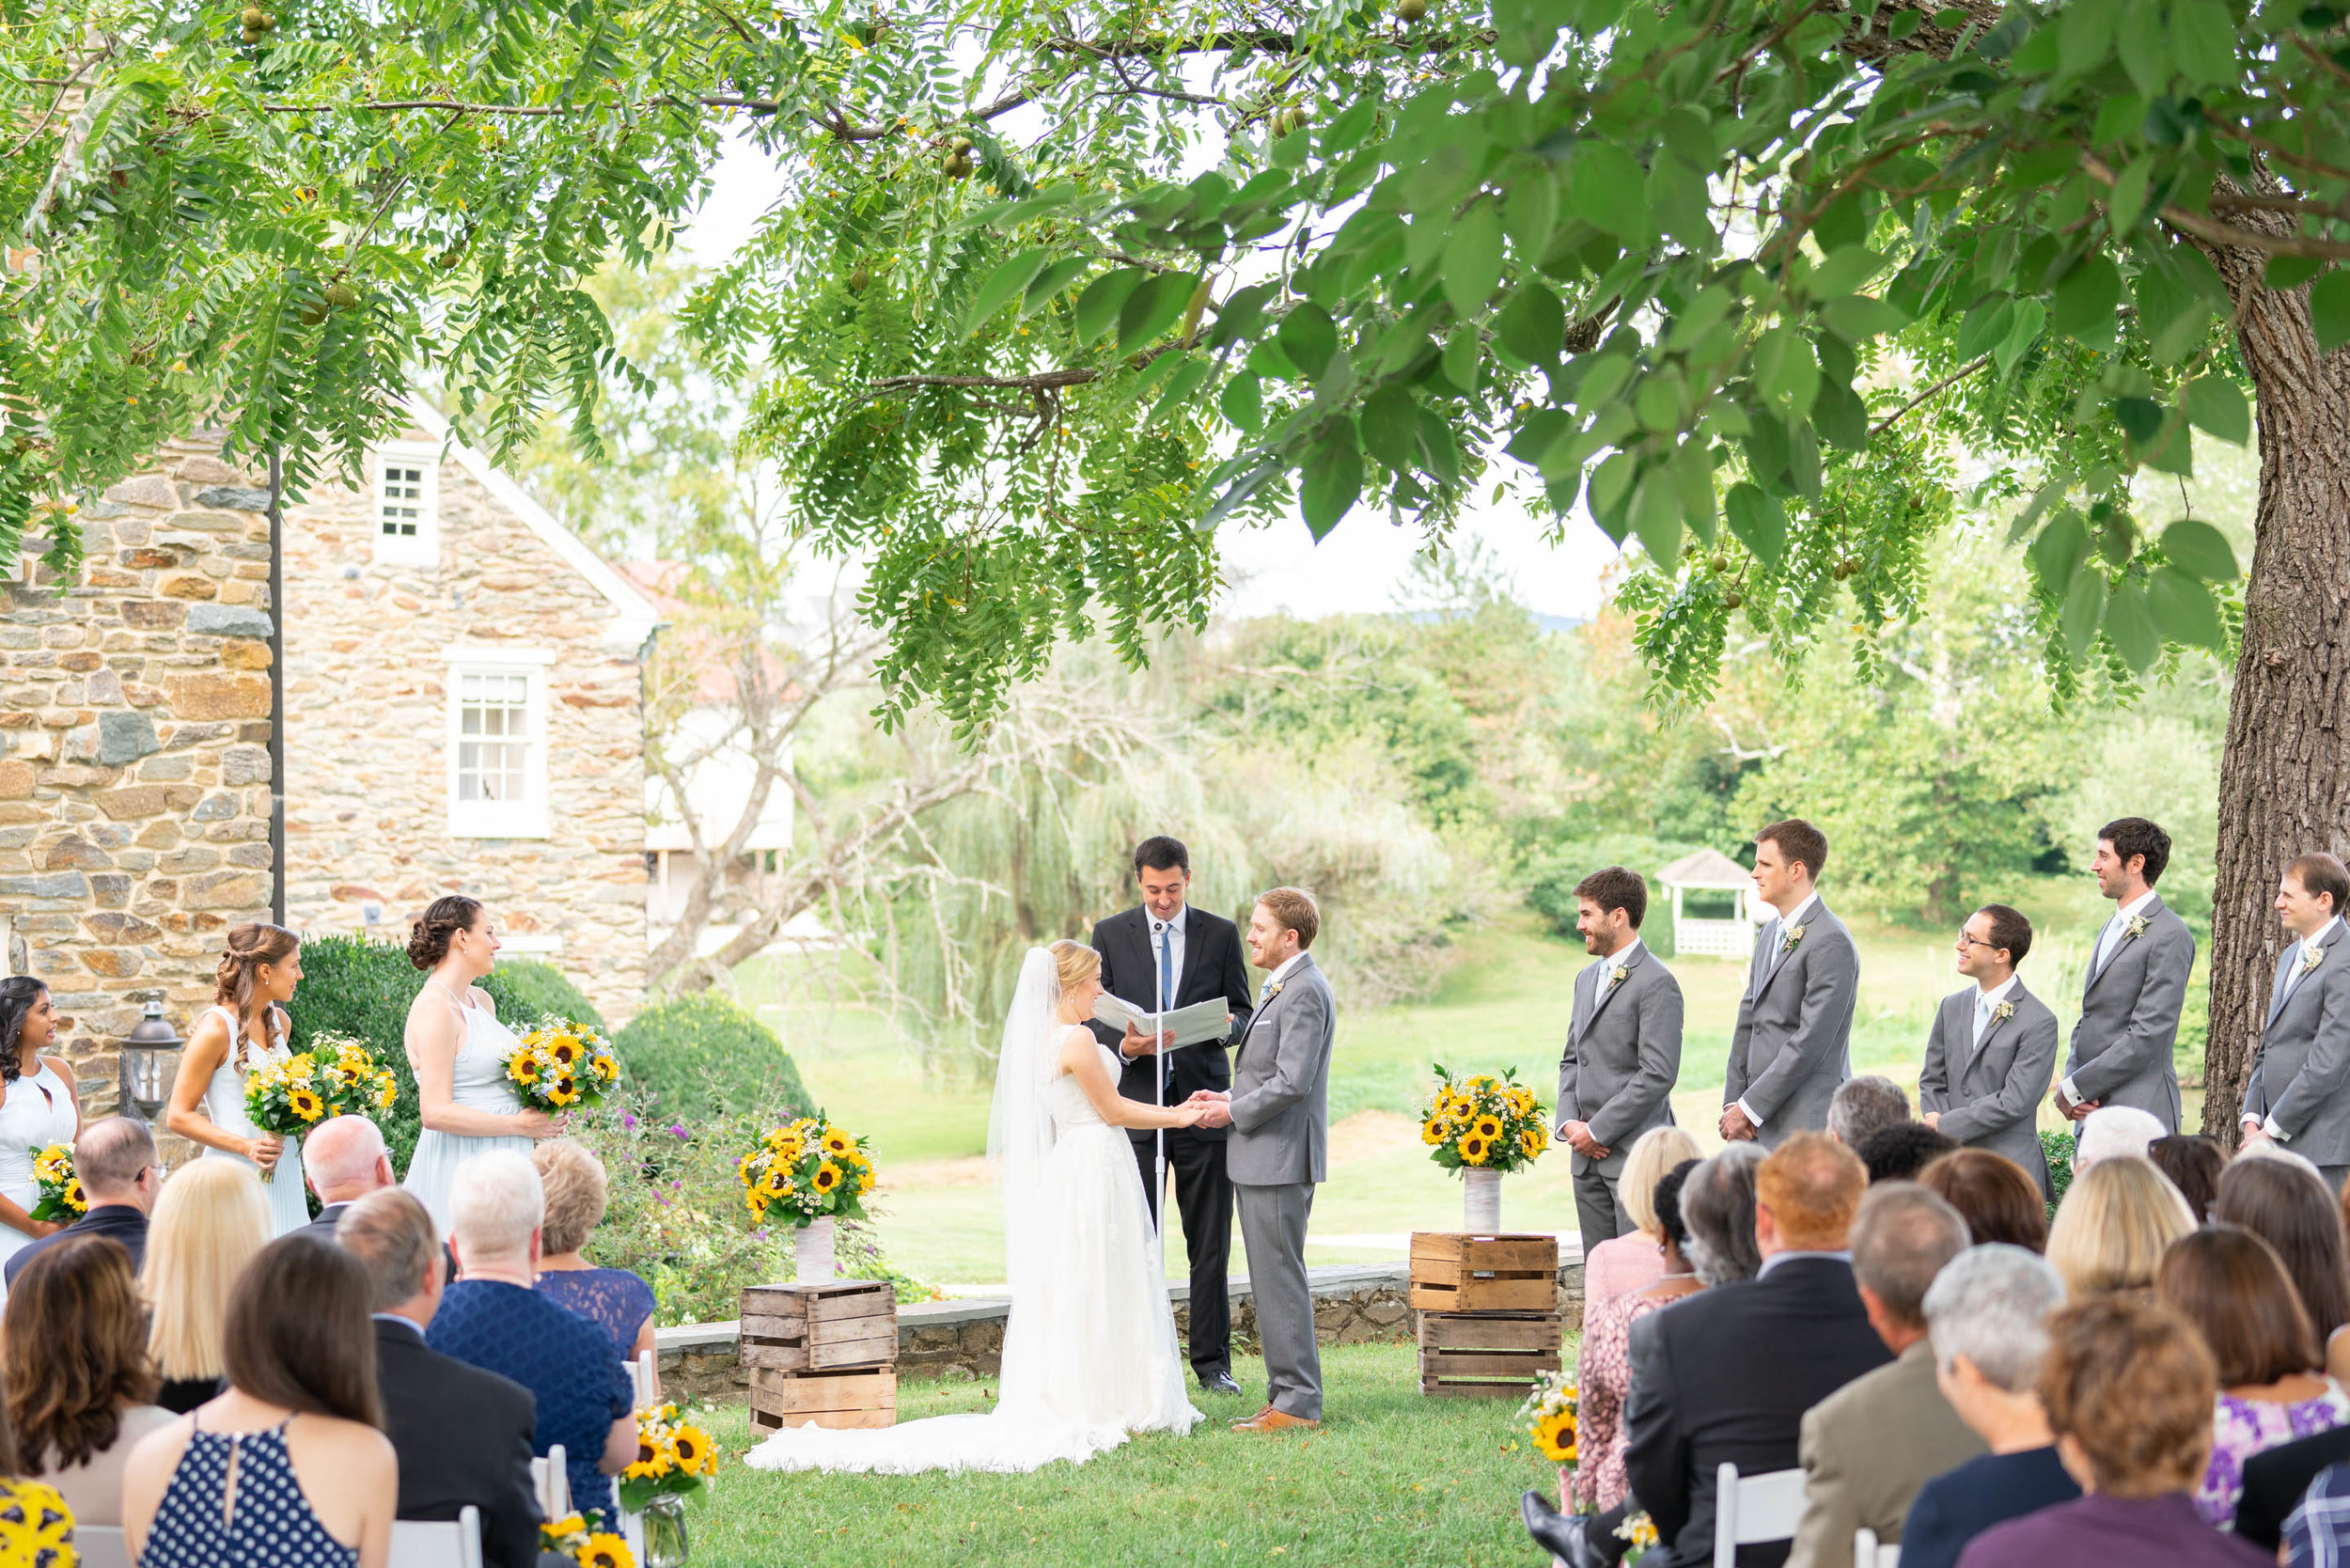 Outdoor ceremony overlooking lake at Stone Manor Country Club wedding